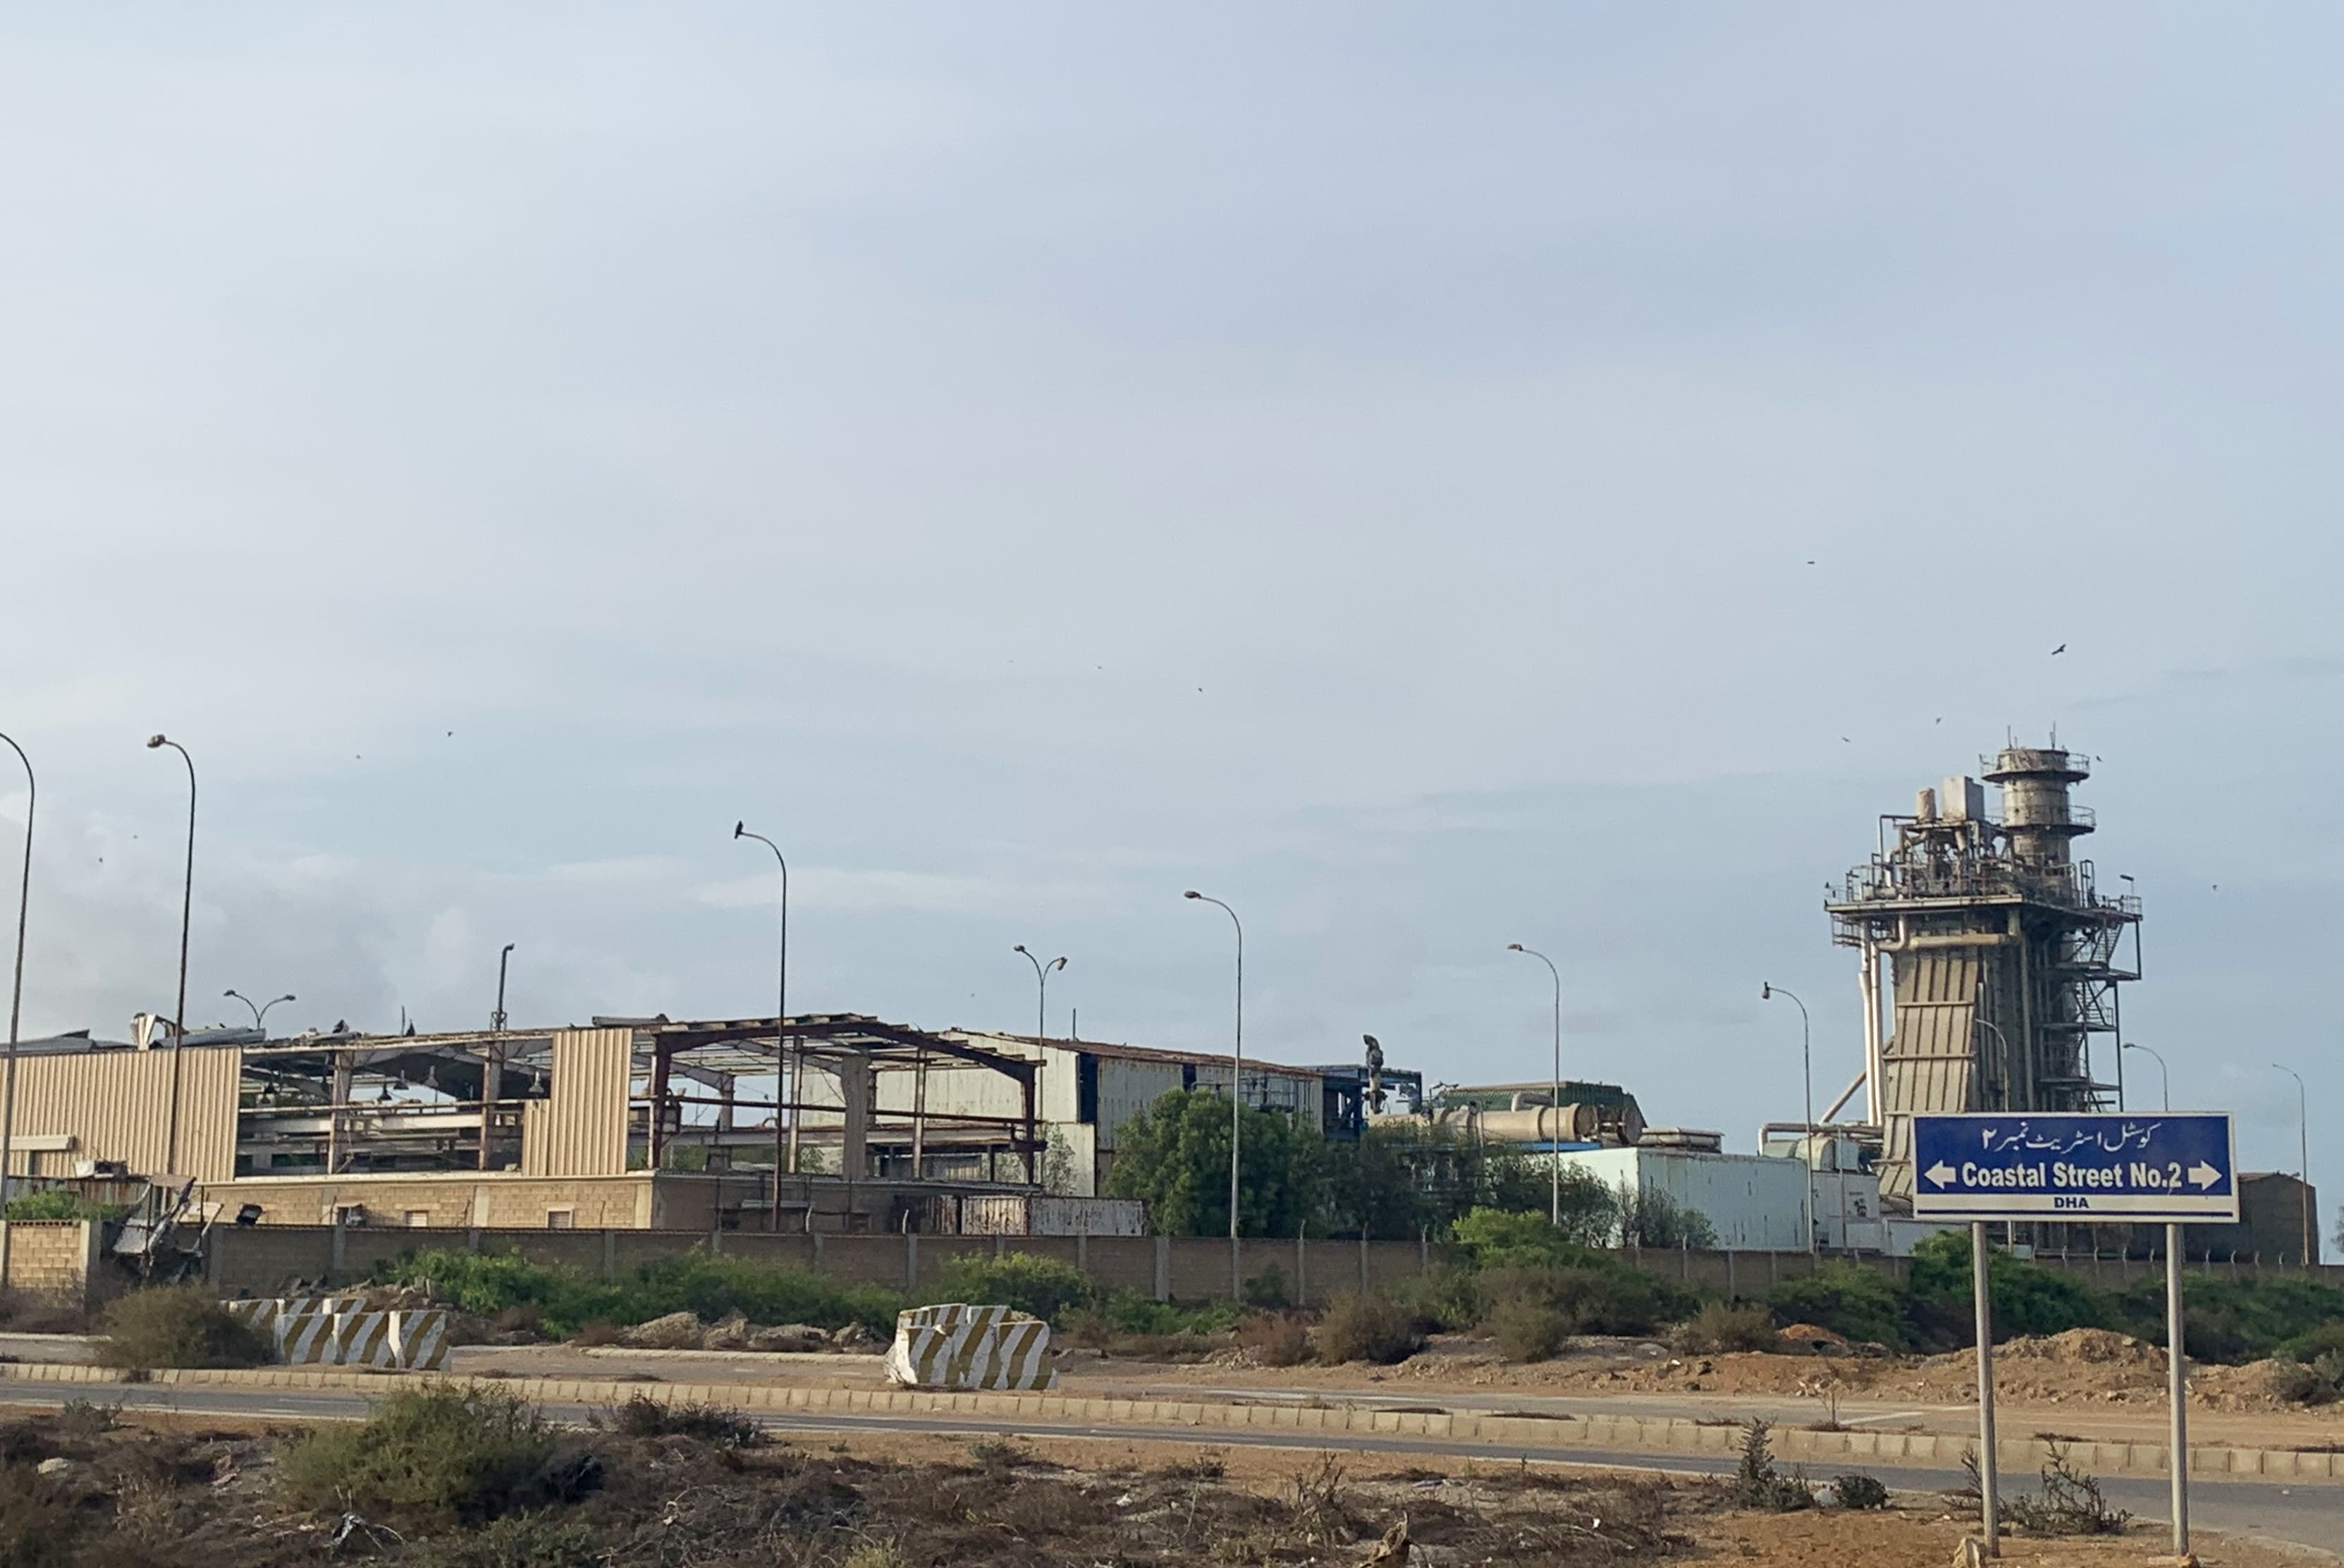 DHA Cogen Desalination Plant, located in DHA Phase VIII, from street view | Marvi Mazhar